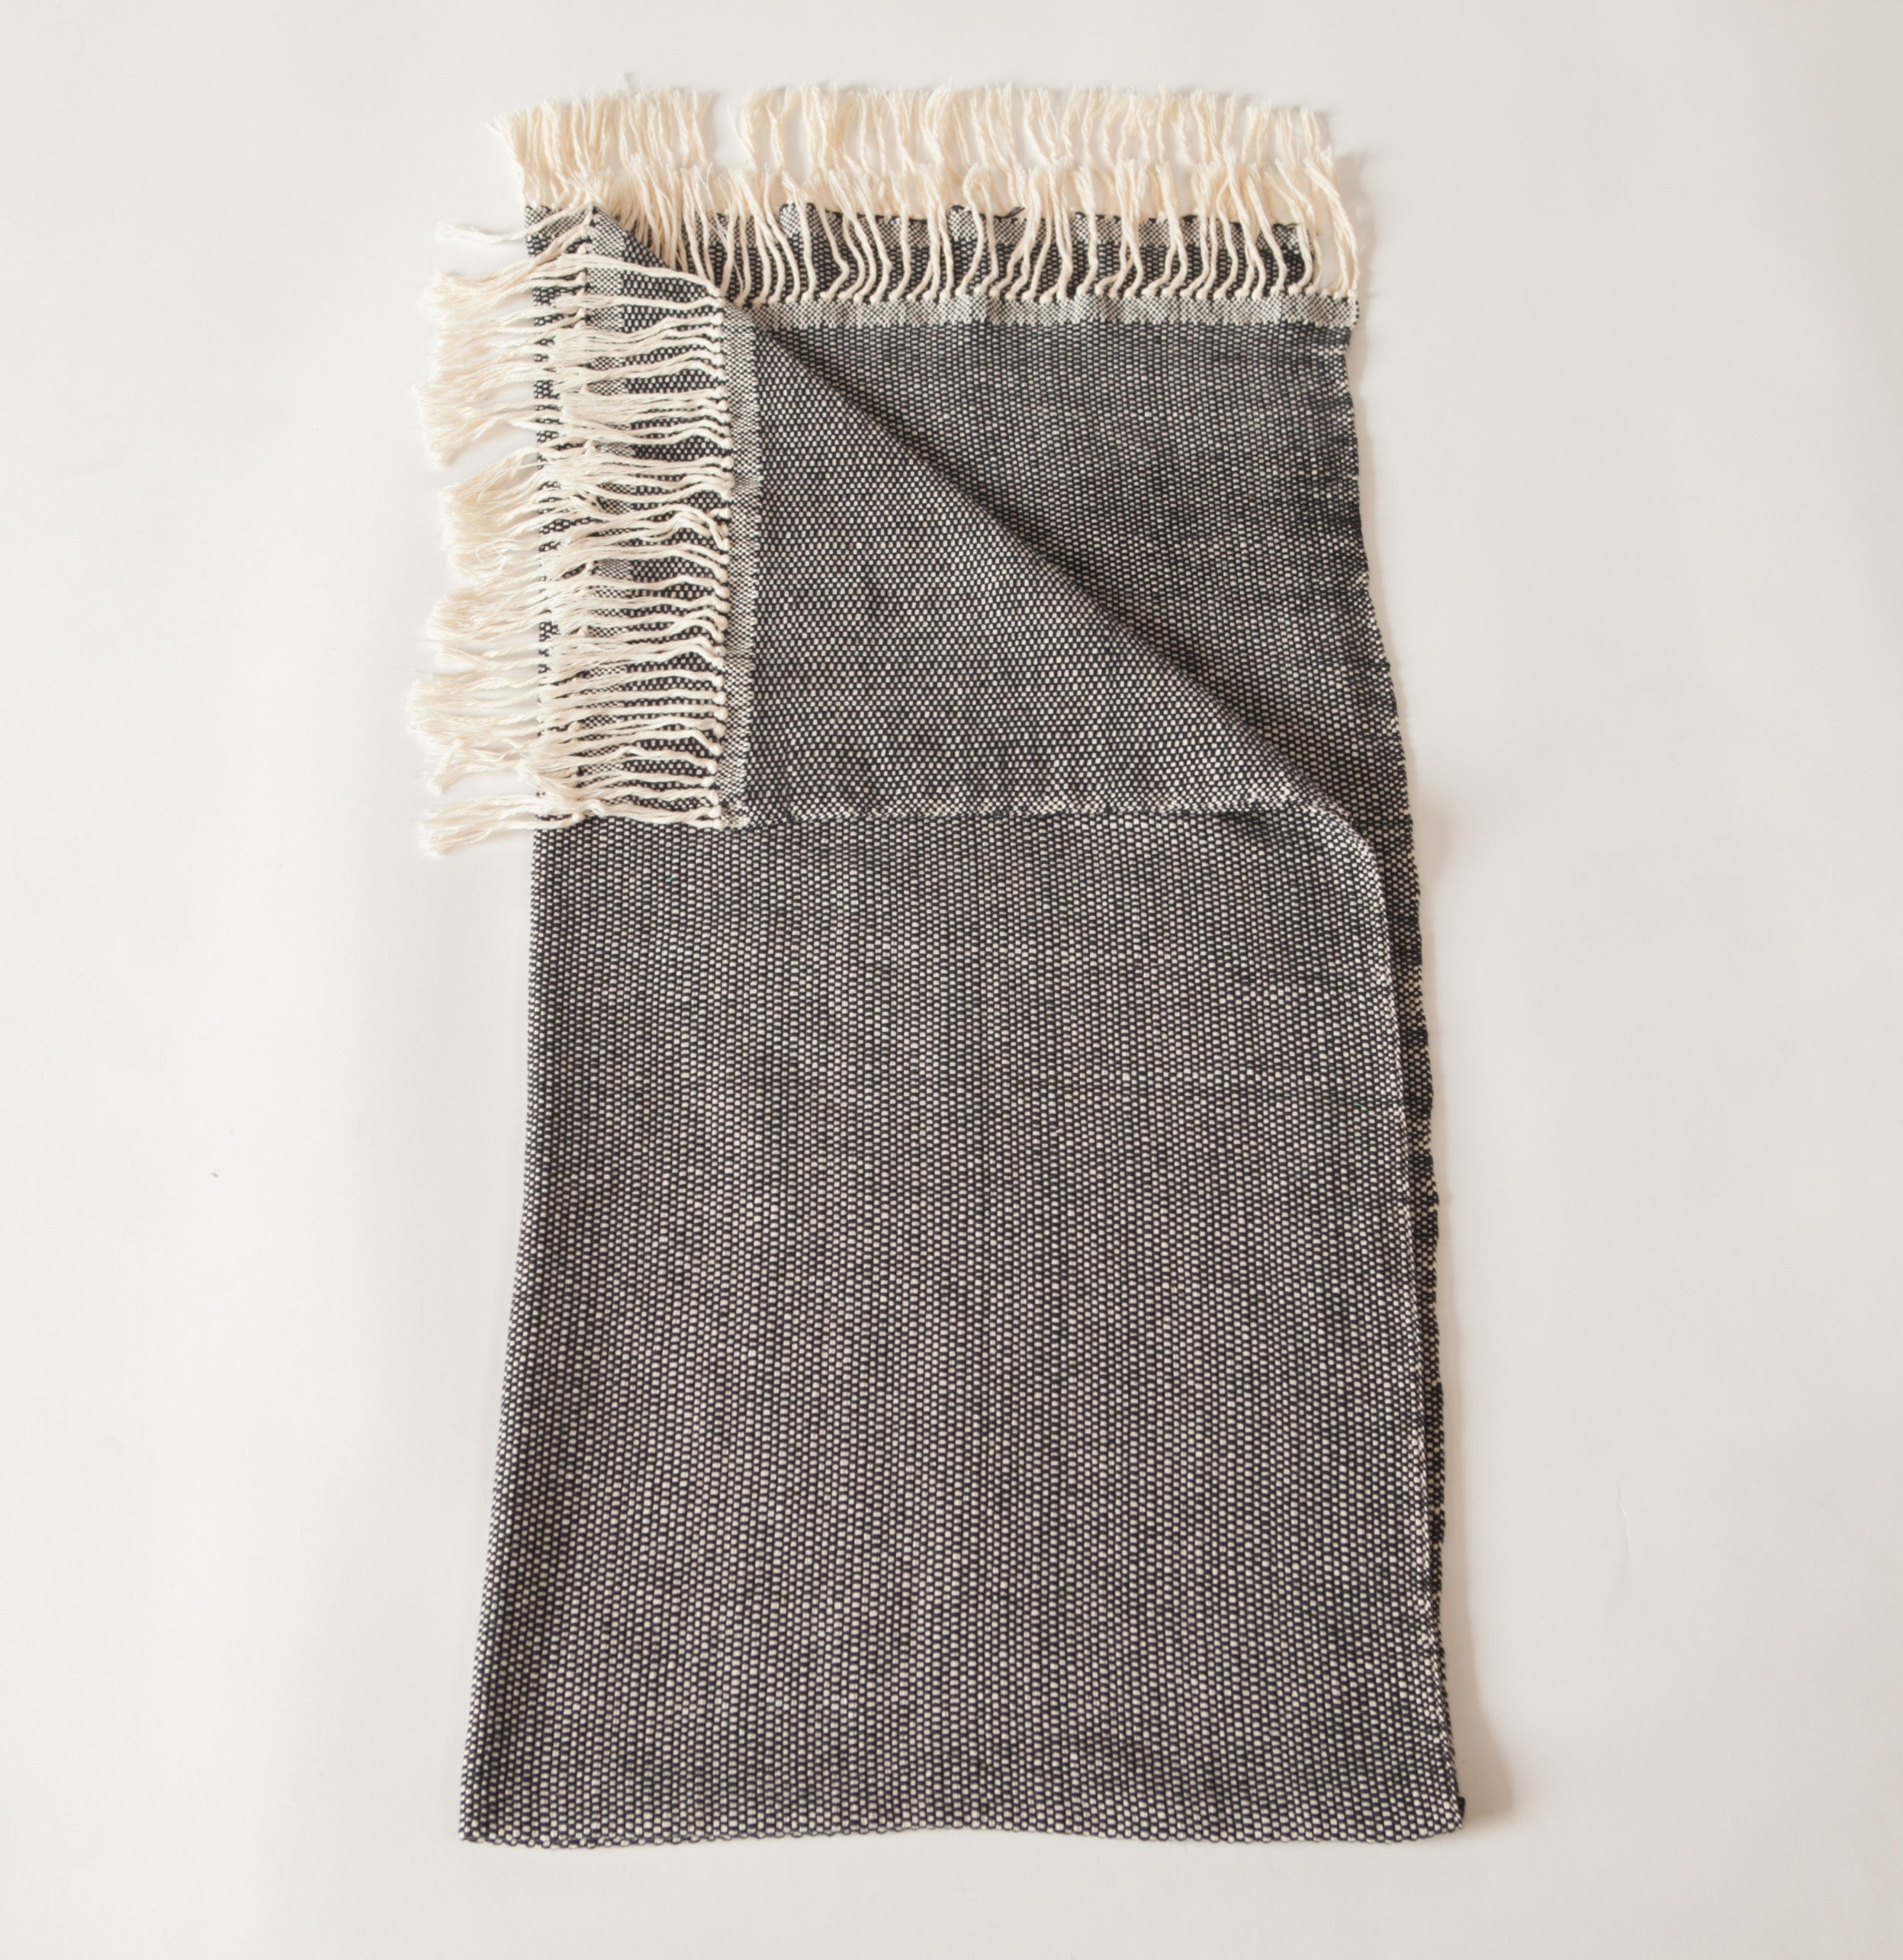 Handwoven cotton throw black and white